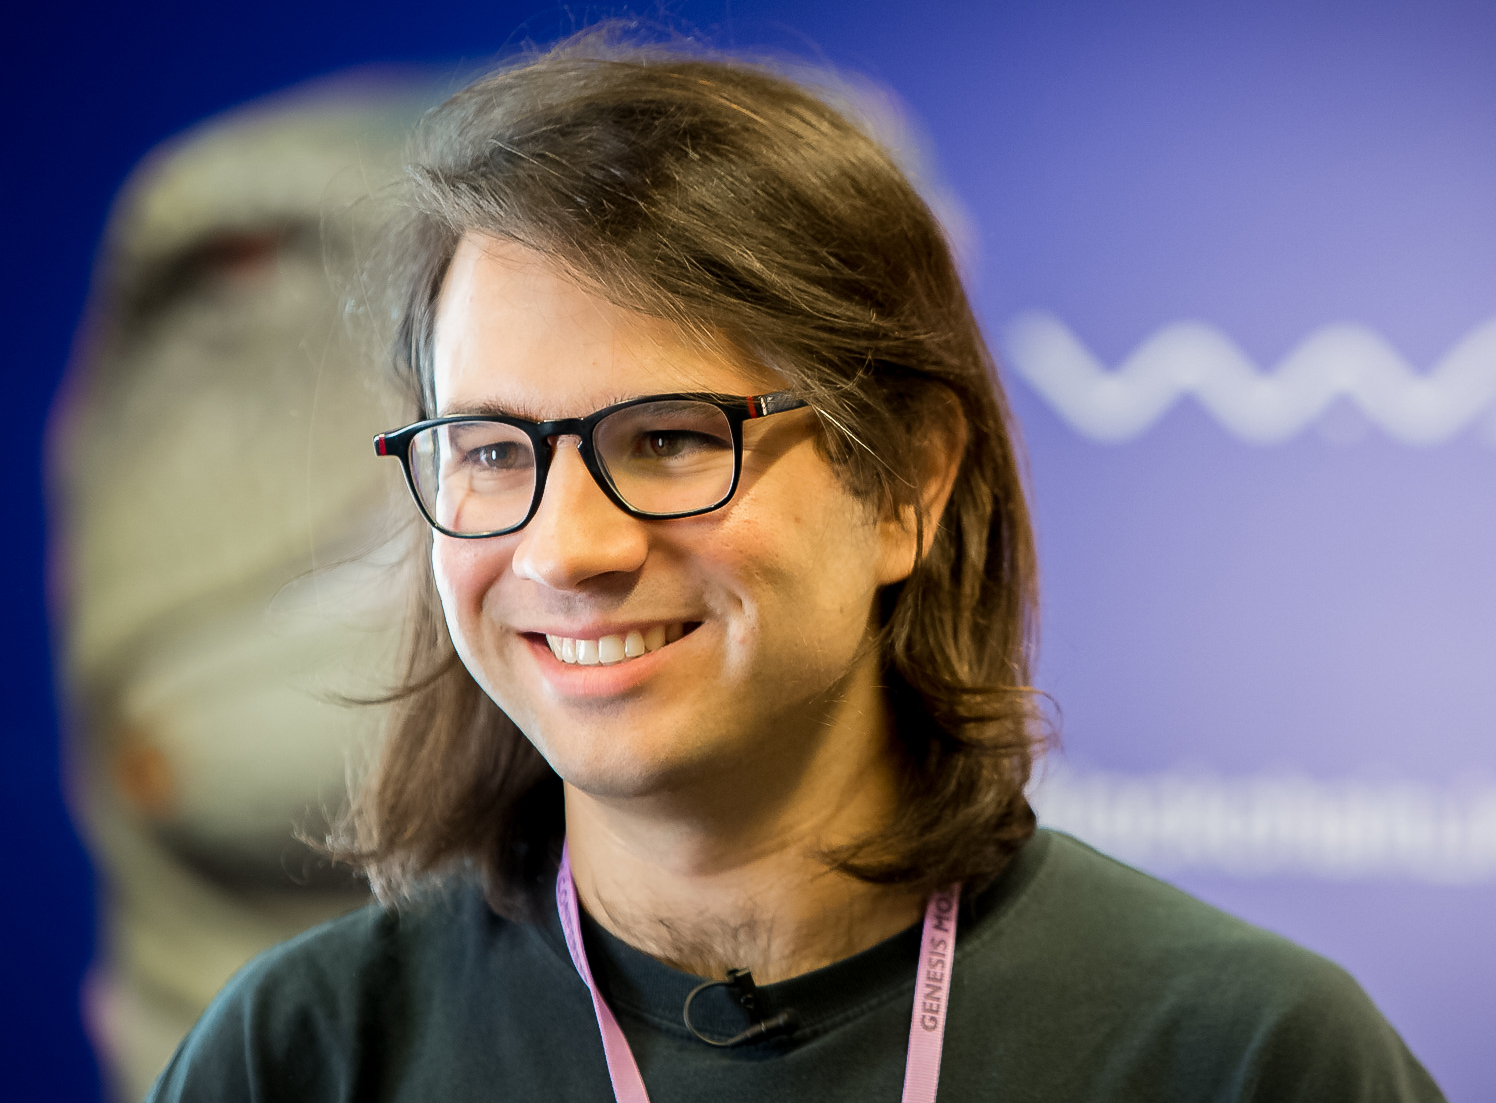 Here's Why Ethereum Researcher Vlad Zamfir is Saying No to Facebook's Libra